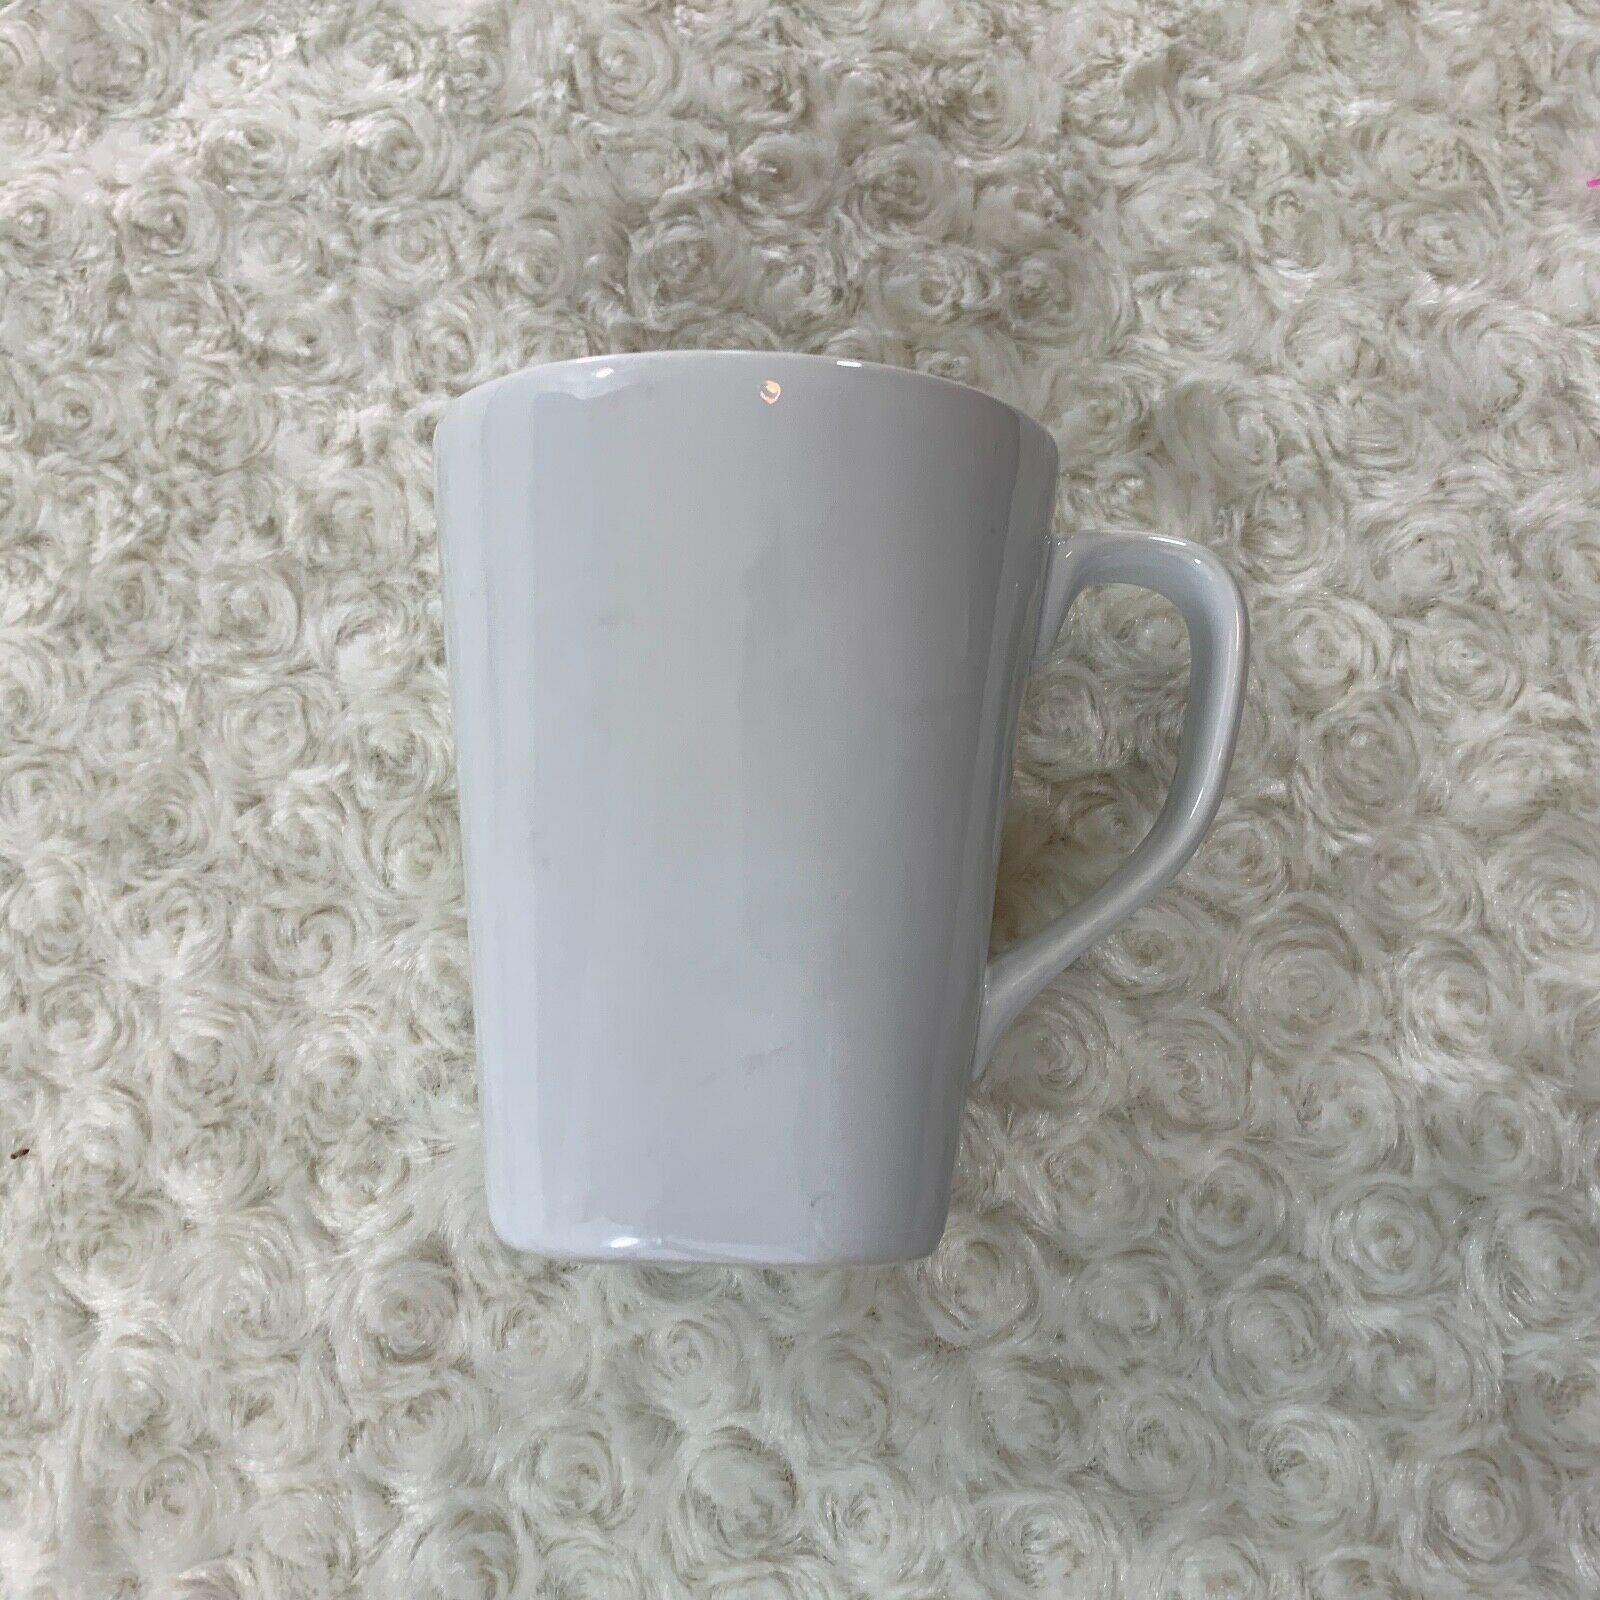 "Primary image for Threshold White Lot of 6 Cup Mug 4.5"" tall x 3.5"" diam"